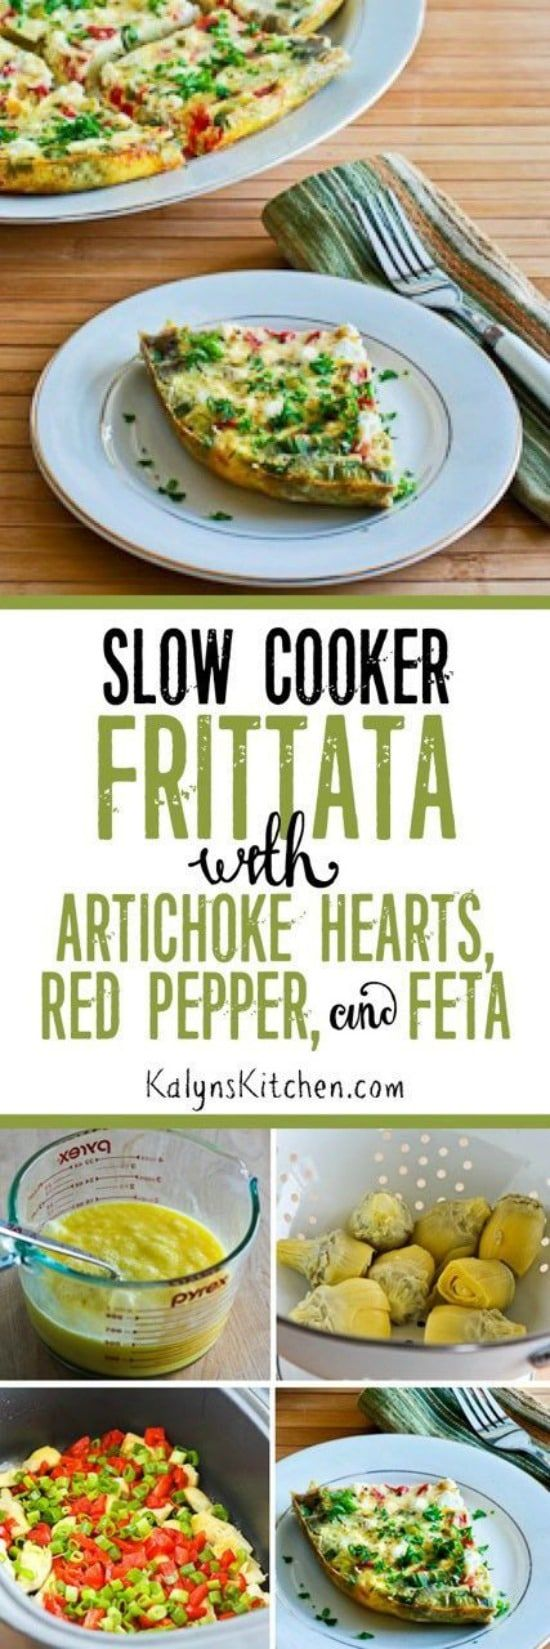 Slow Cooker Frittata with Artichoke Hearts, Roasted Red Pepper, and Feta